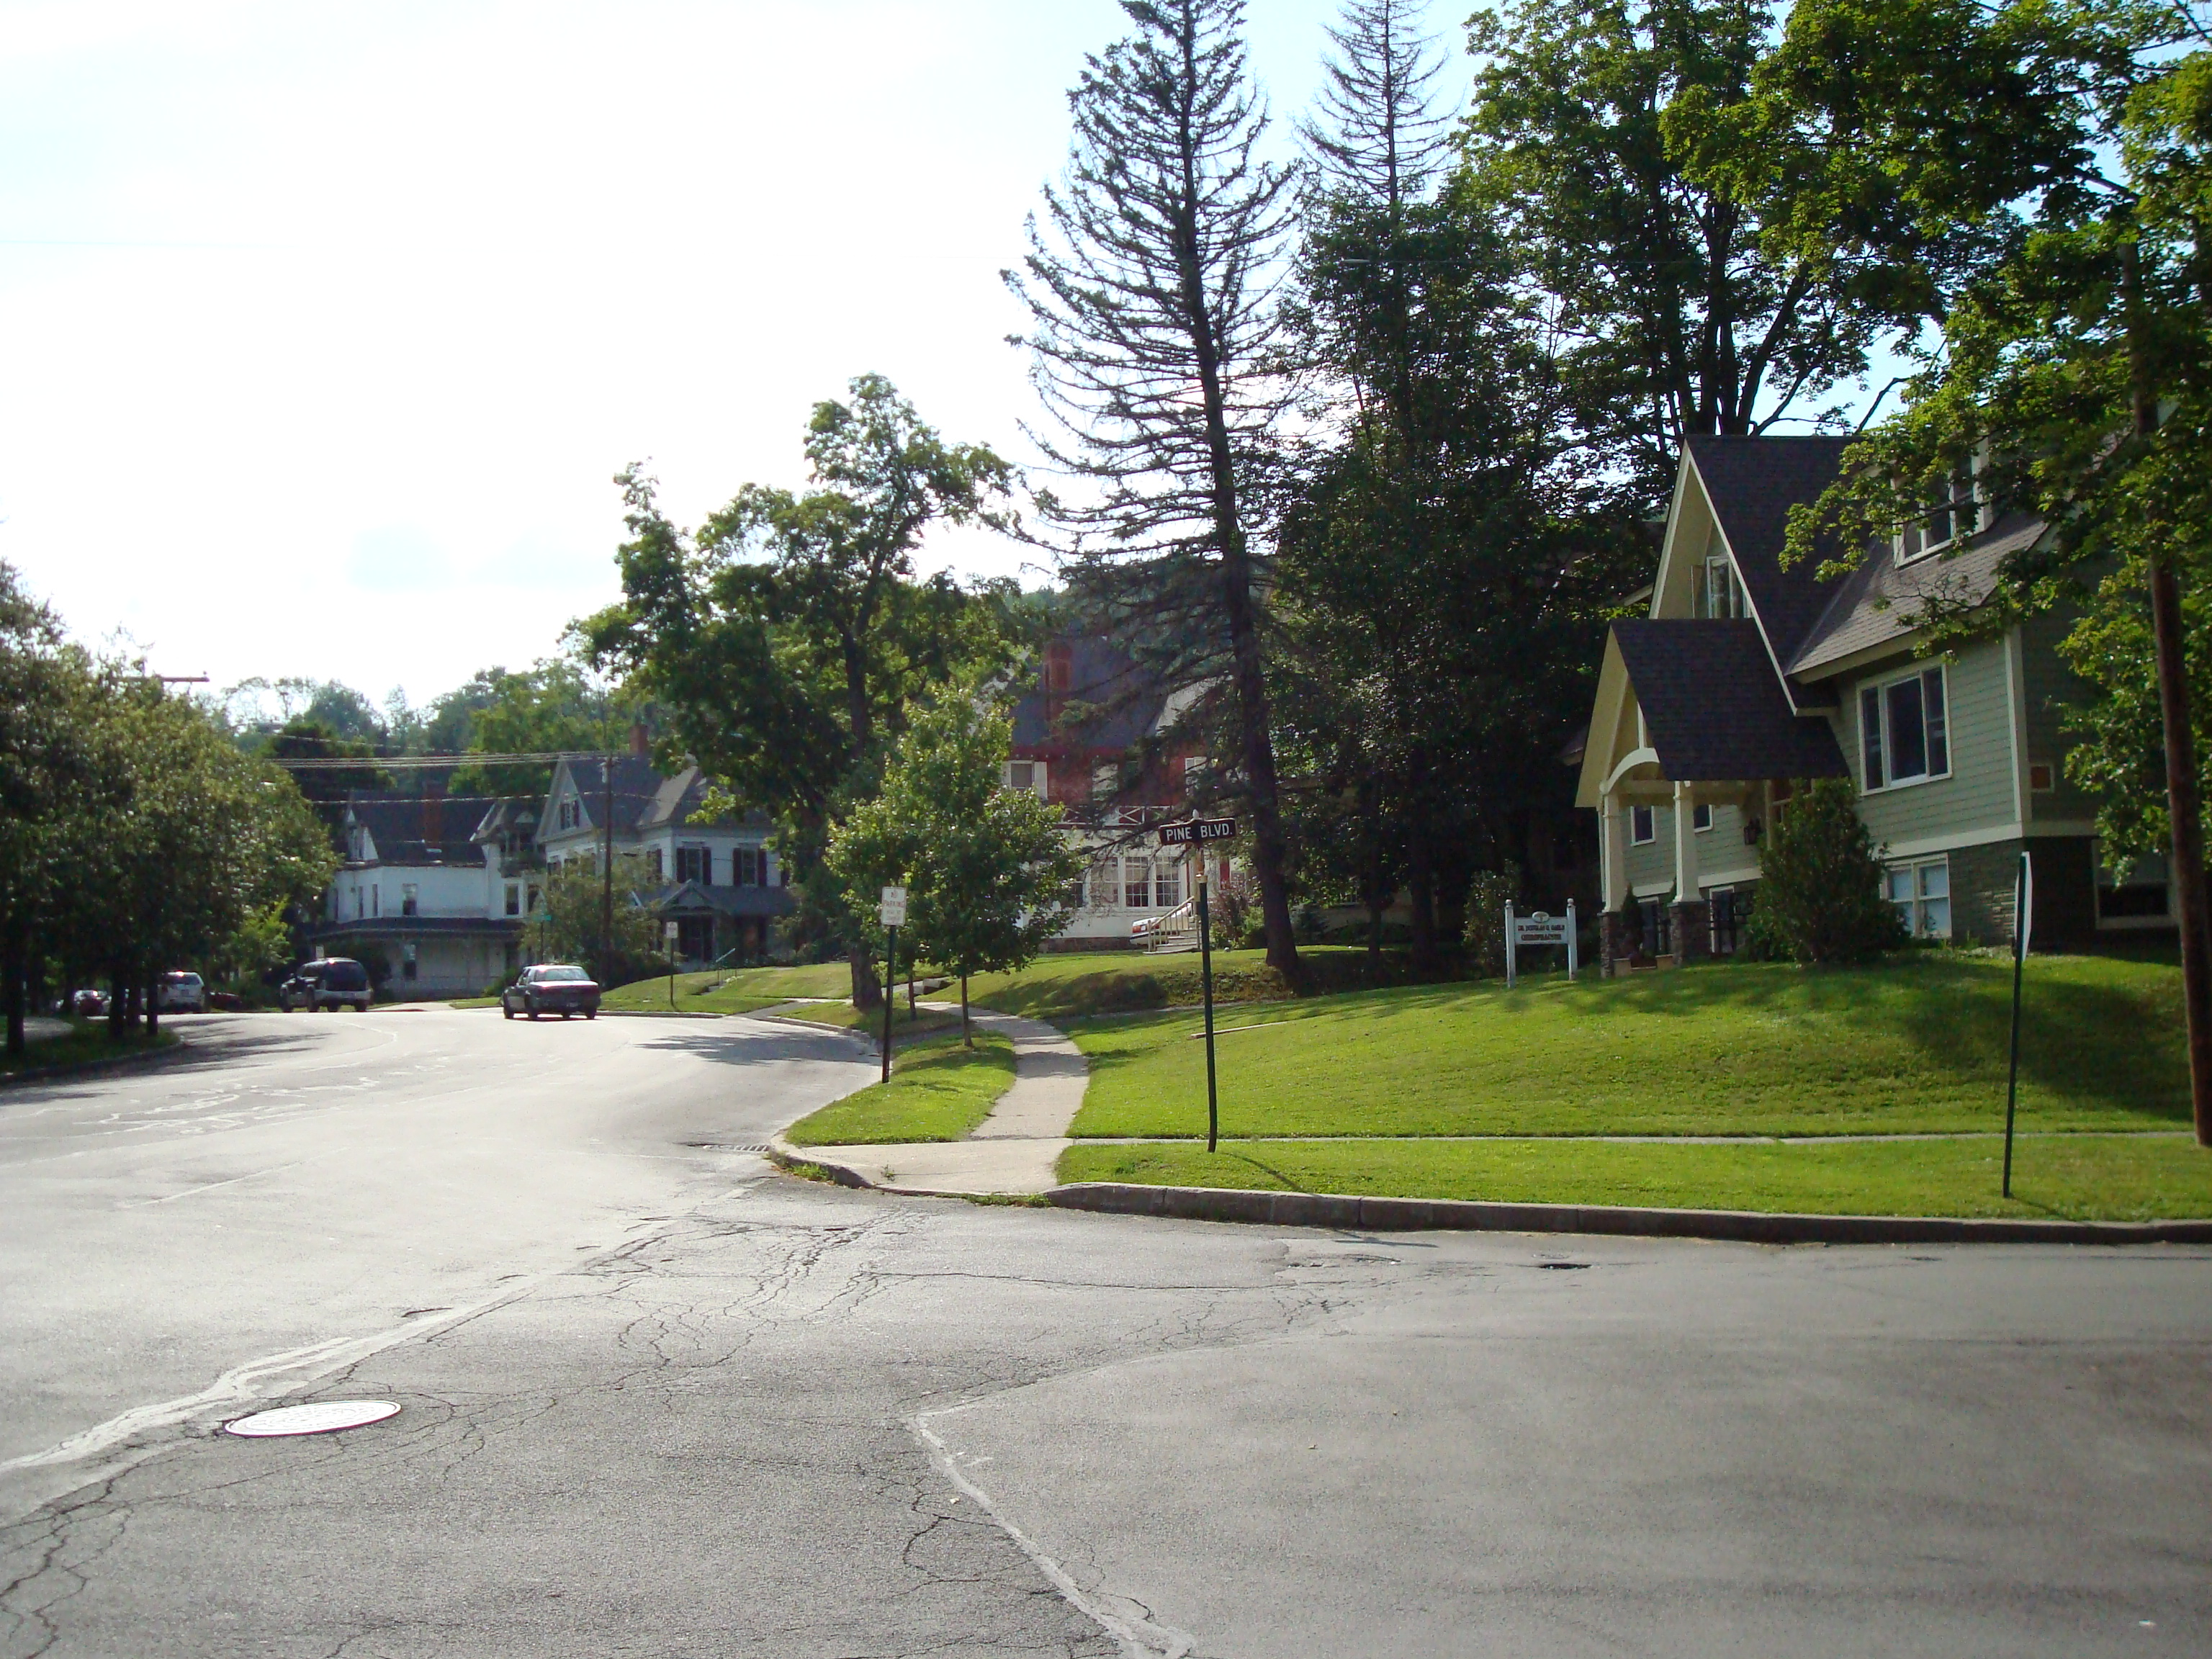 One of the streets in Cooperstown